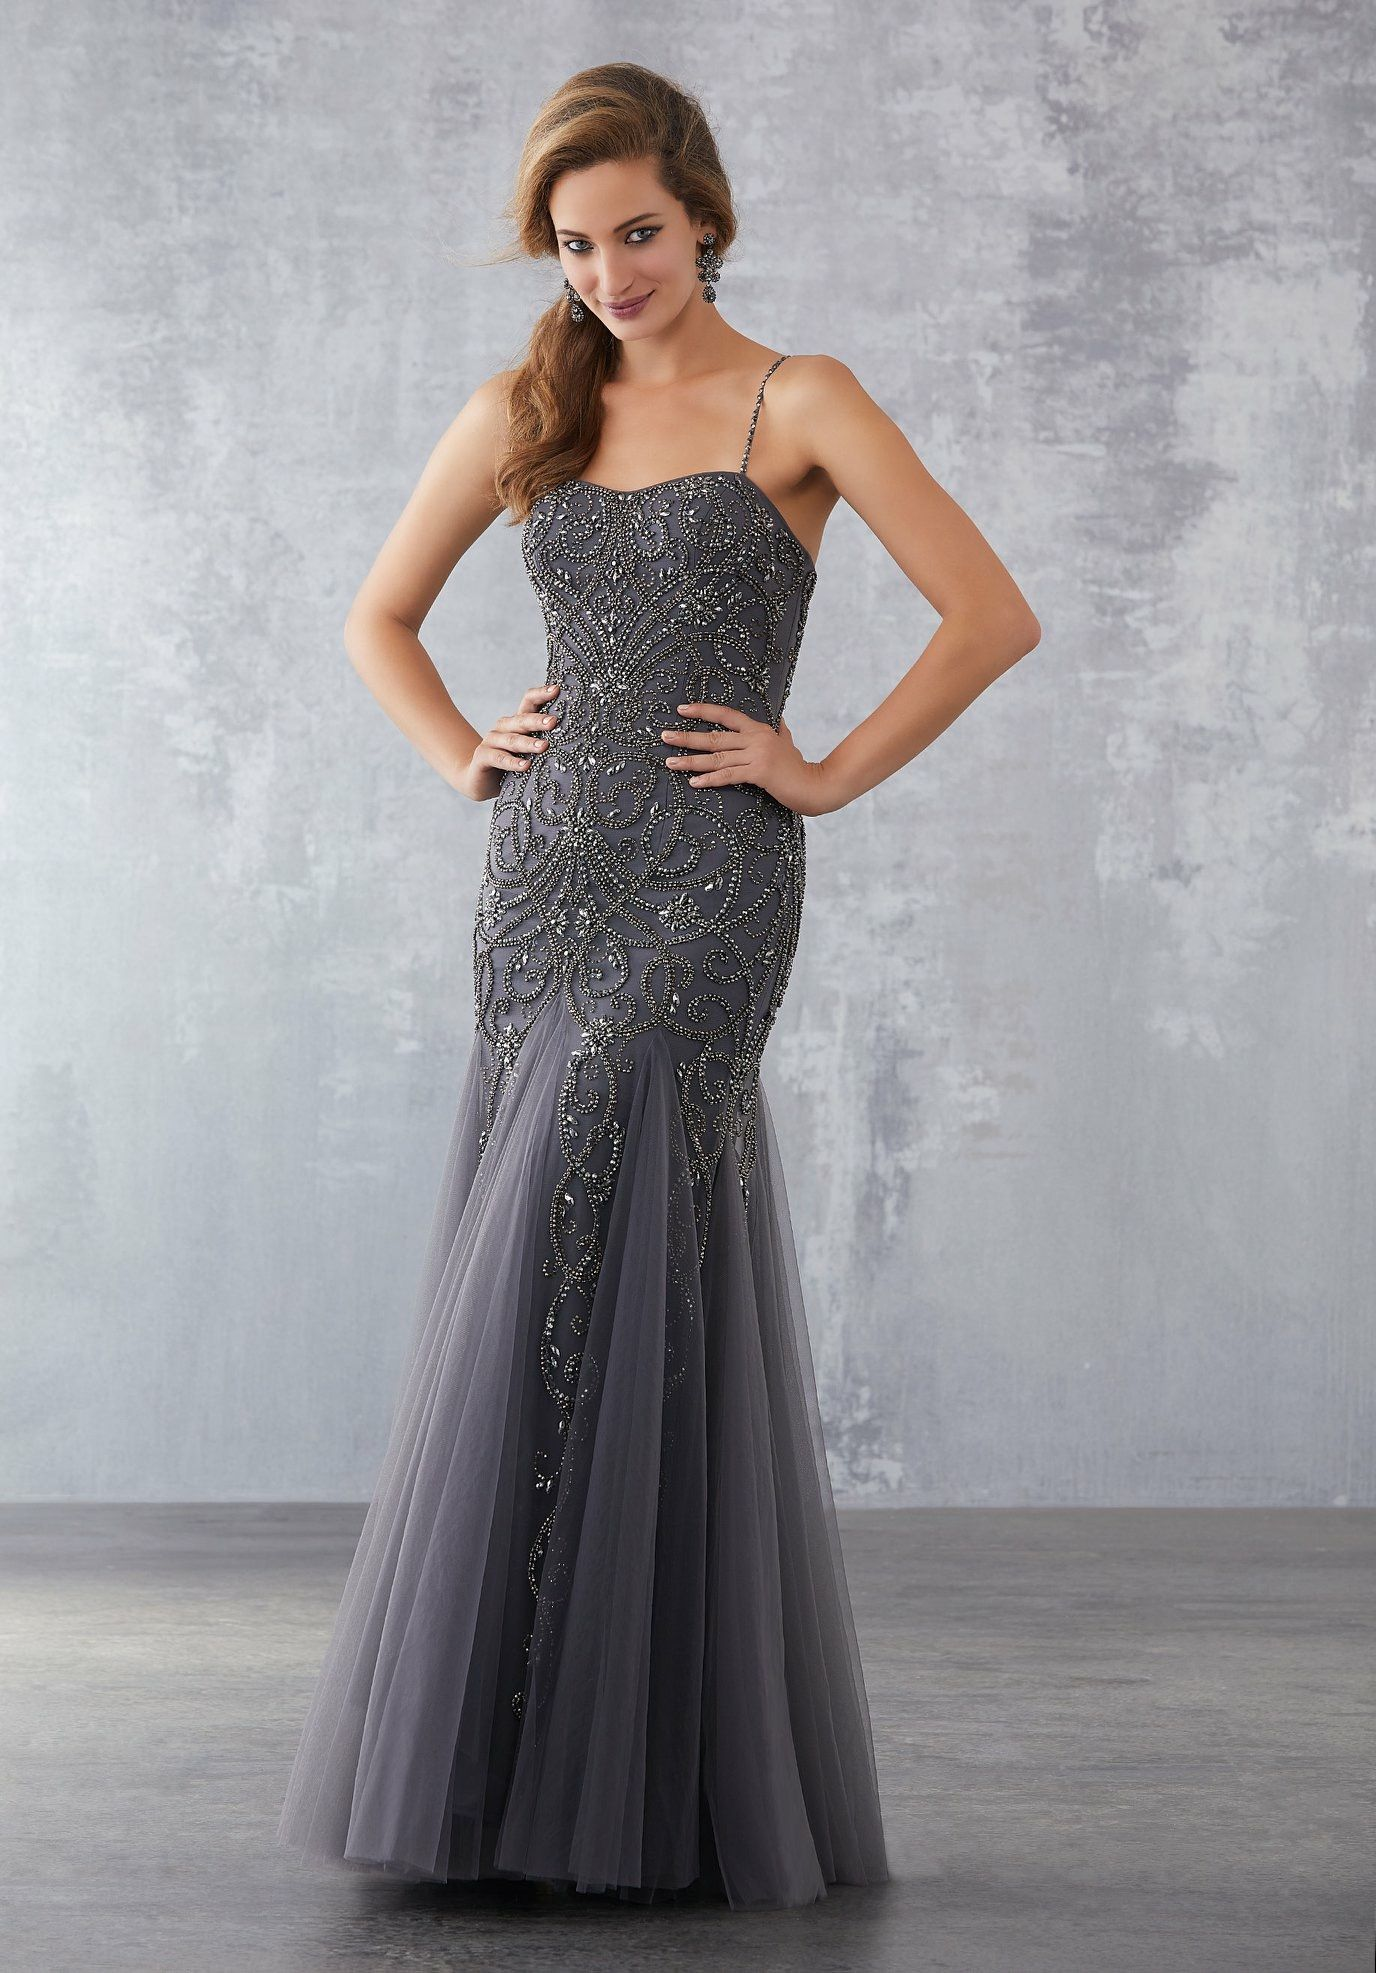 72edd4bb0e457 Mori Lee Bridesmaid, Bridesmaids, Formal Evening Dresses, Formal Gowns, Evening  Gowns,